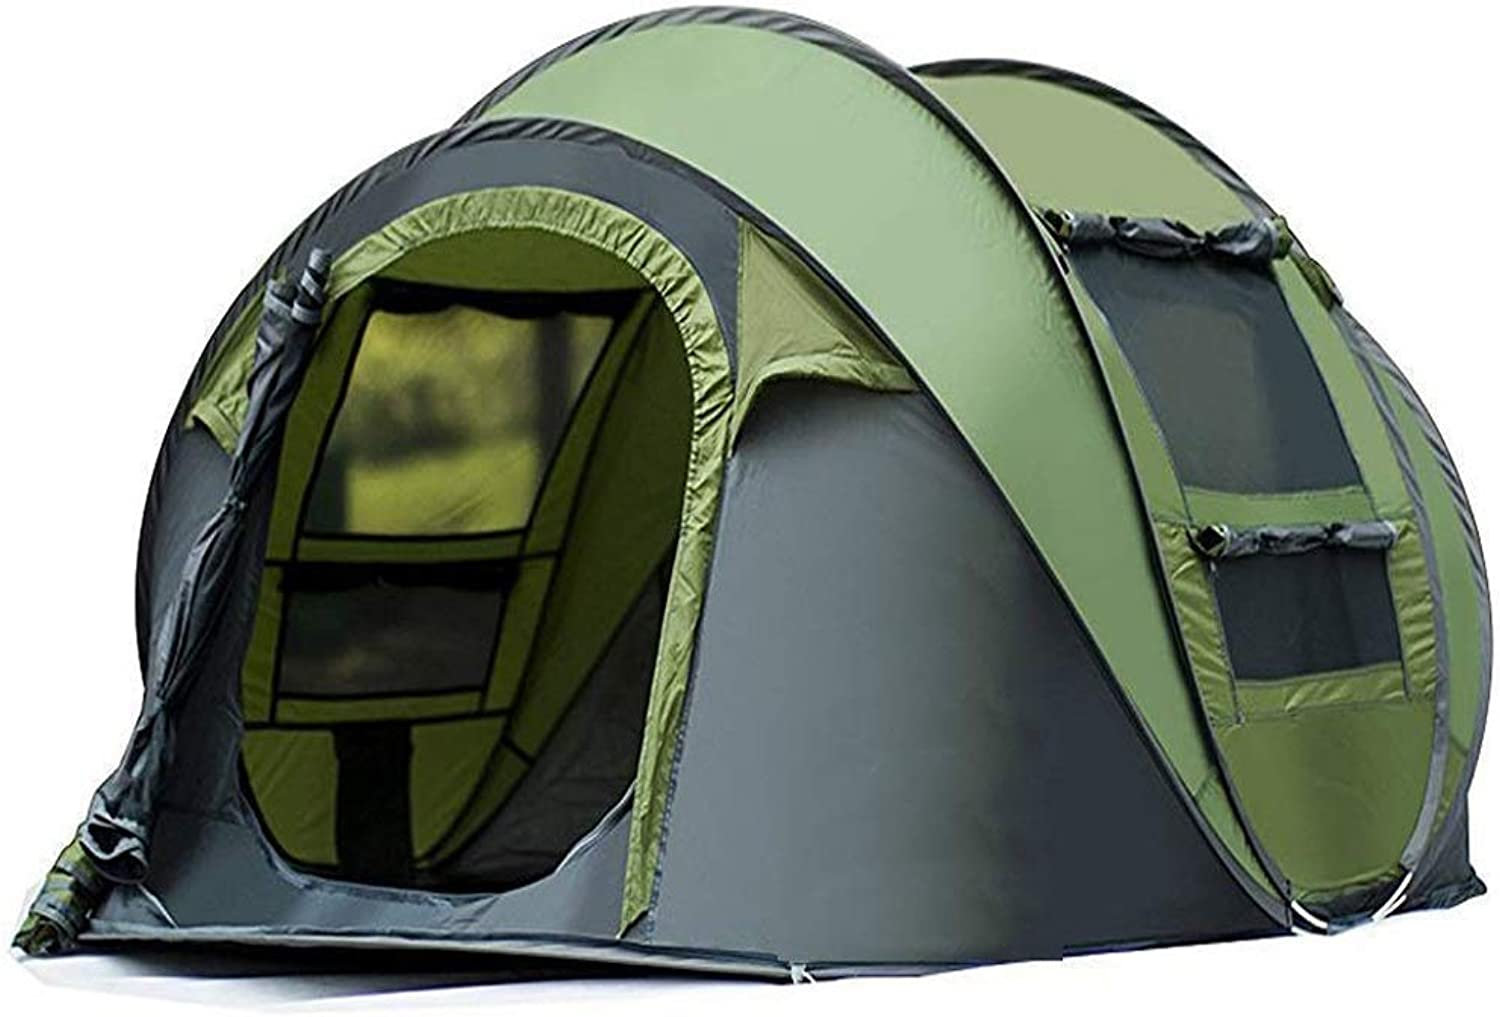 Youxd Camping Tent, 34 People Portable Fast Open Heat Resistant Outdoor Travel Beach Hiking Camping Outdoor Equipment (color   Green)